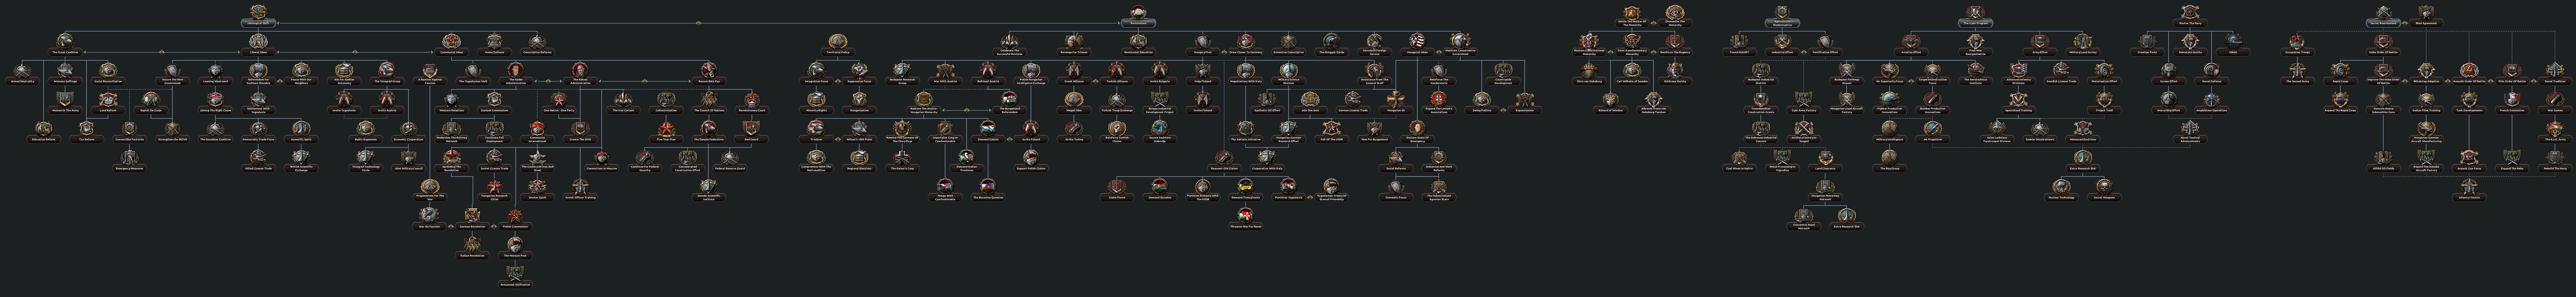 Focus tree image - Hungarian Flavor mod for Hearts of Iron